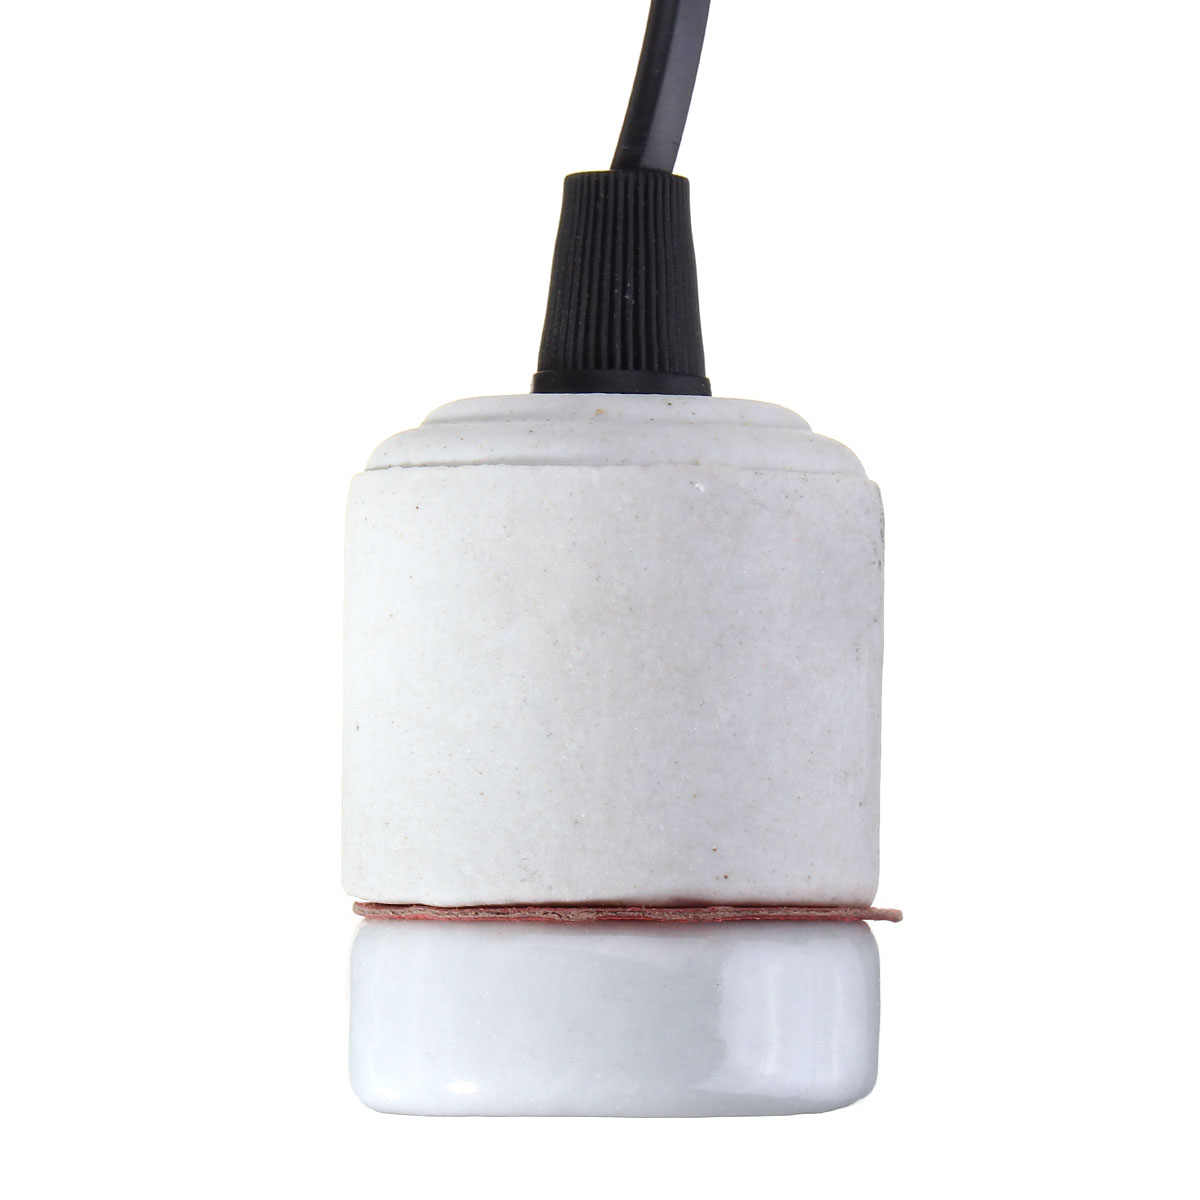 E27 Reptile Ceramic Heat Lamp Holder with Light Switch Socket Adapter Lamp 1.5m Wire Line Fitting for Mix 300W AC110-220V